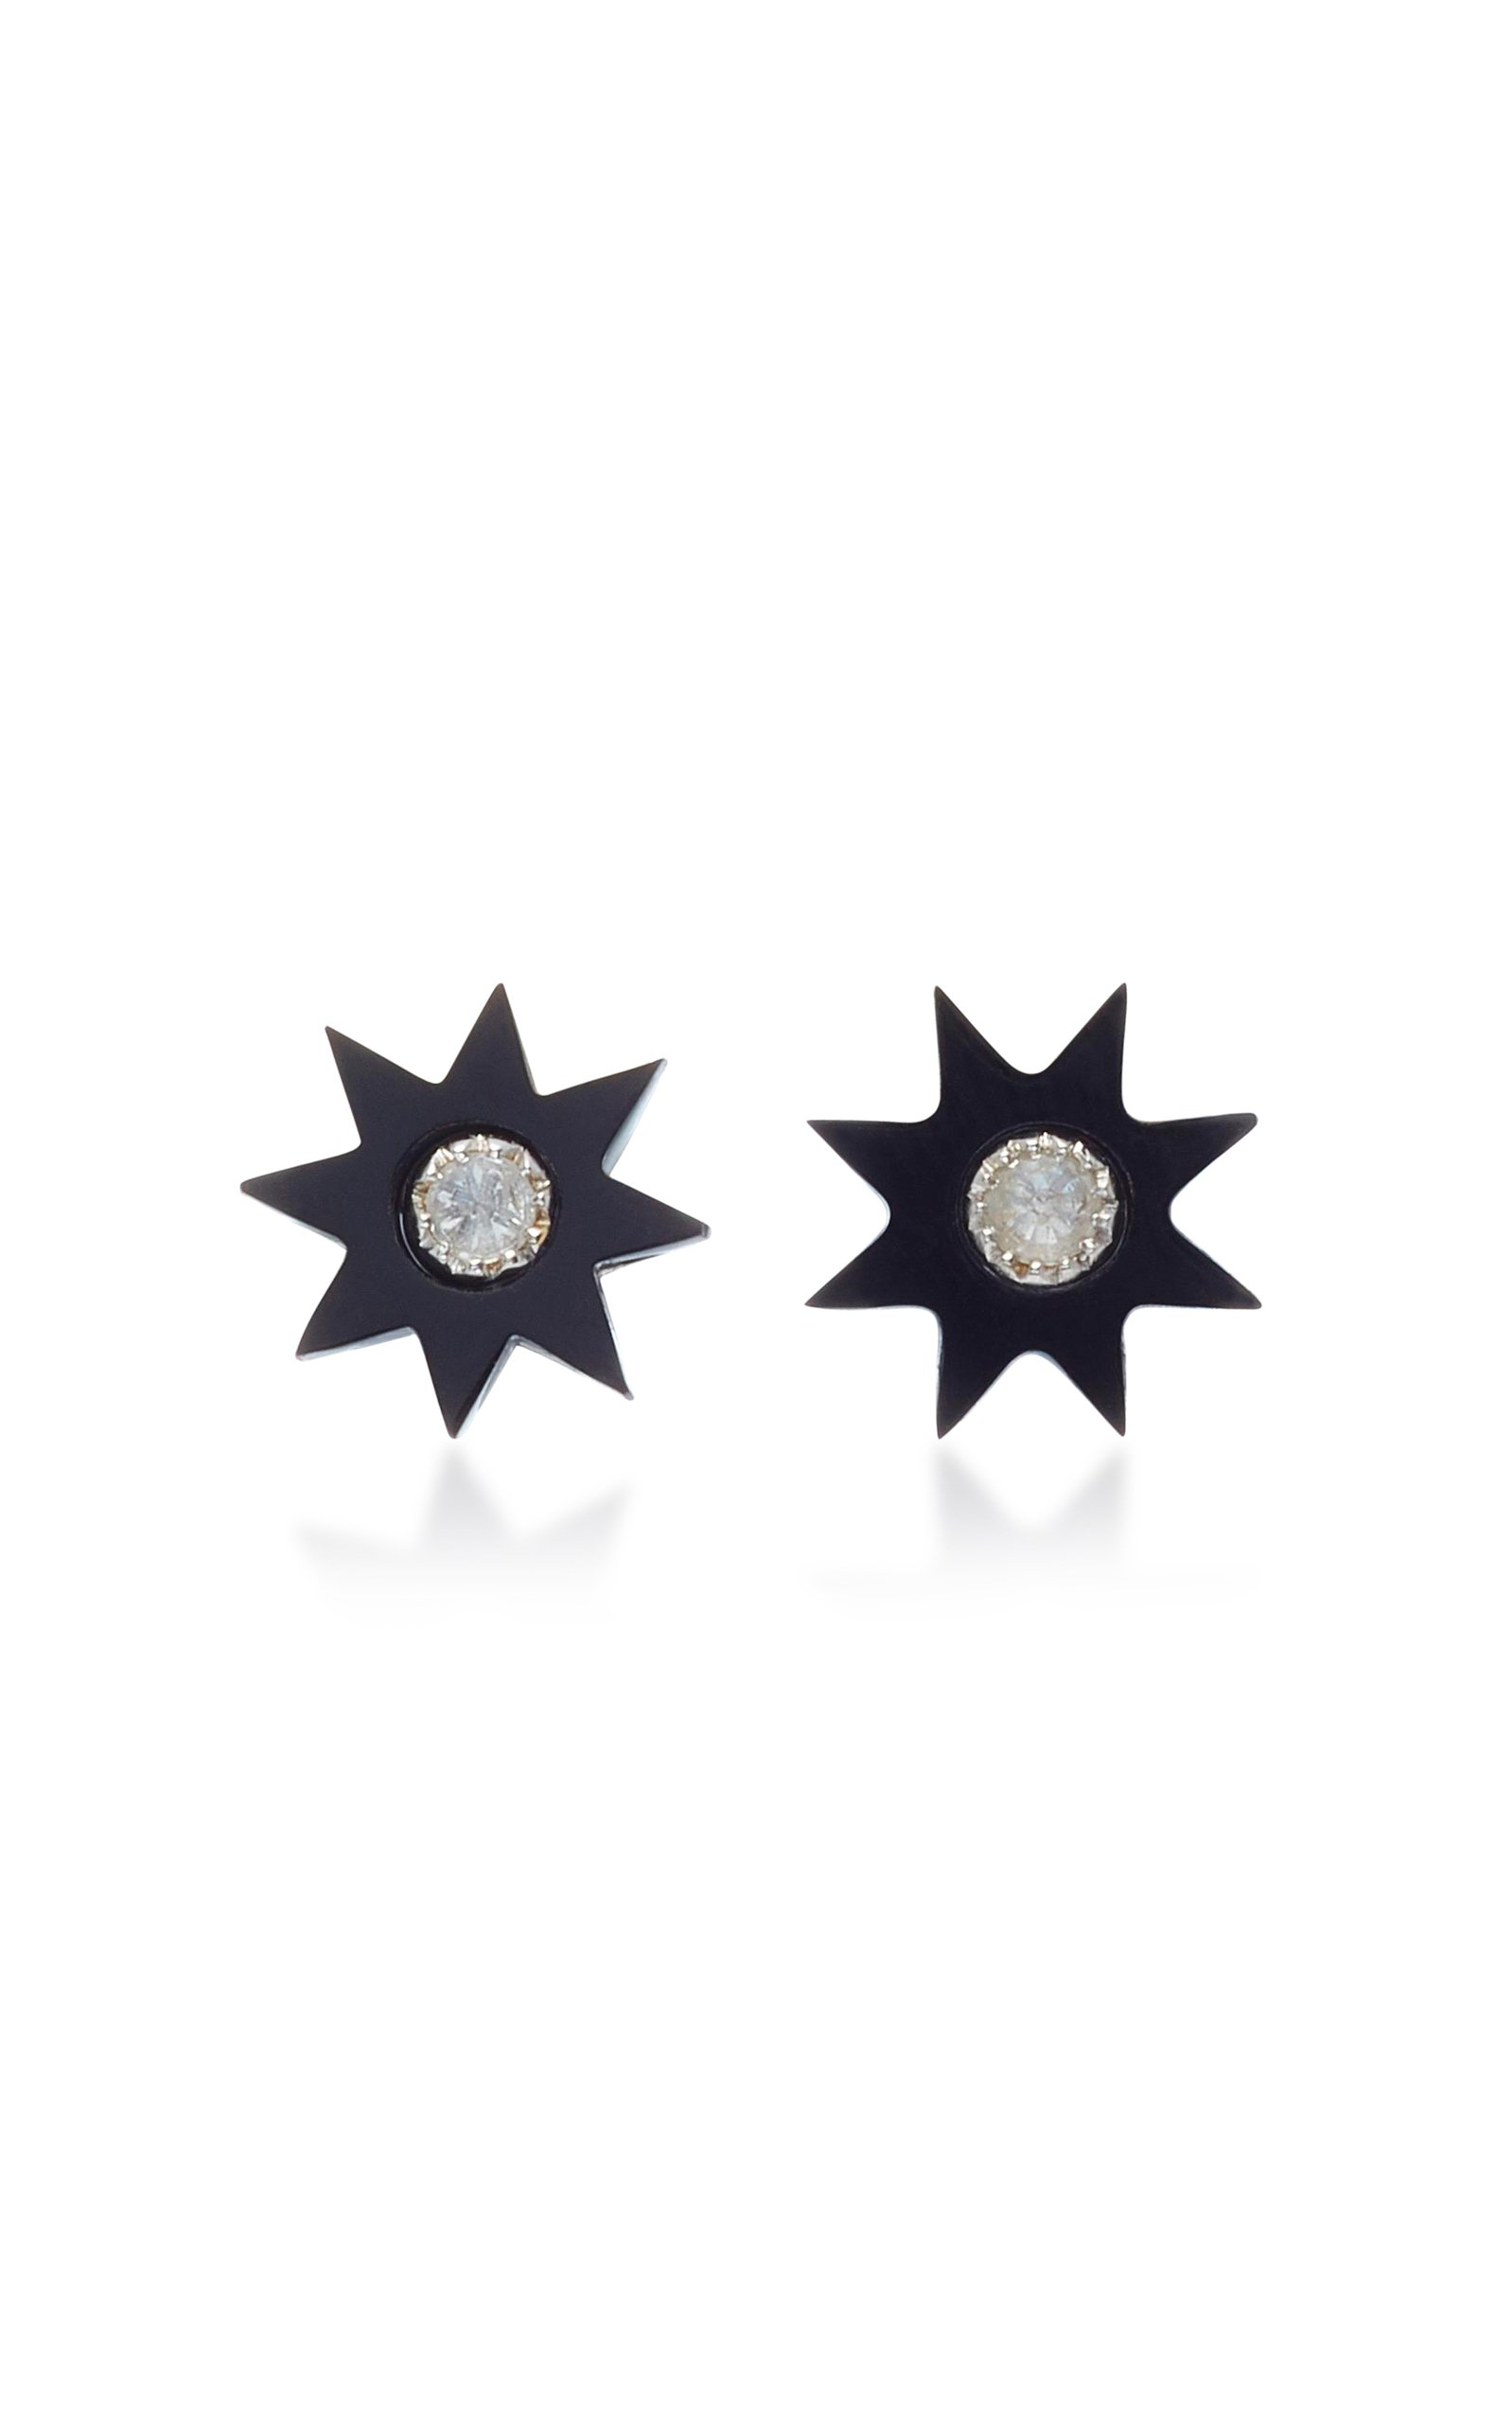 Colette Jewelry Starburst 18K White Gold Onyx and Diamond Earrings